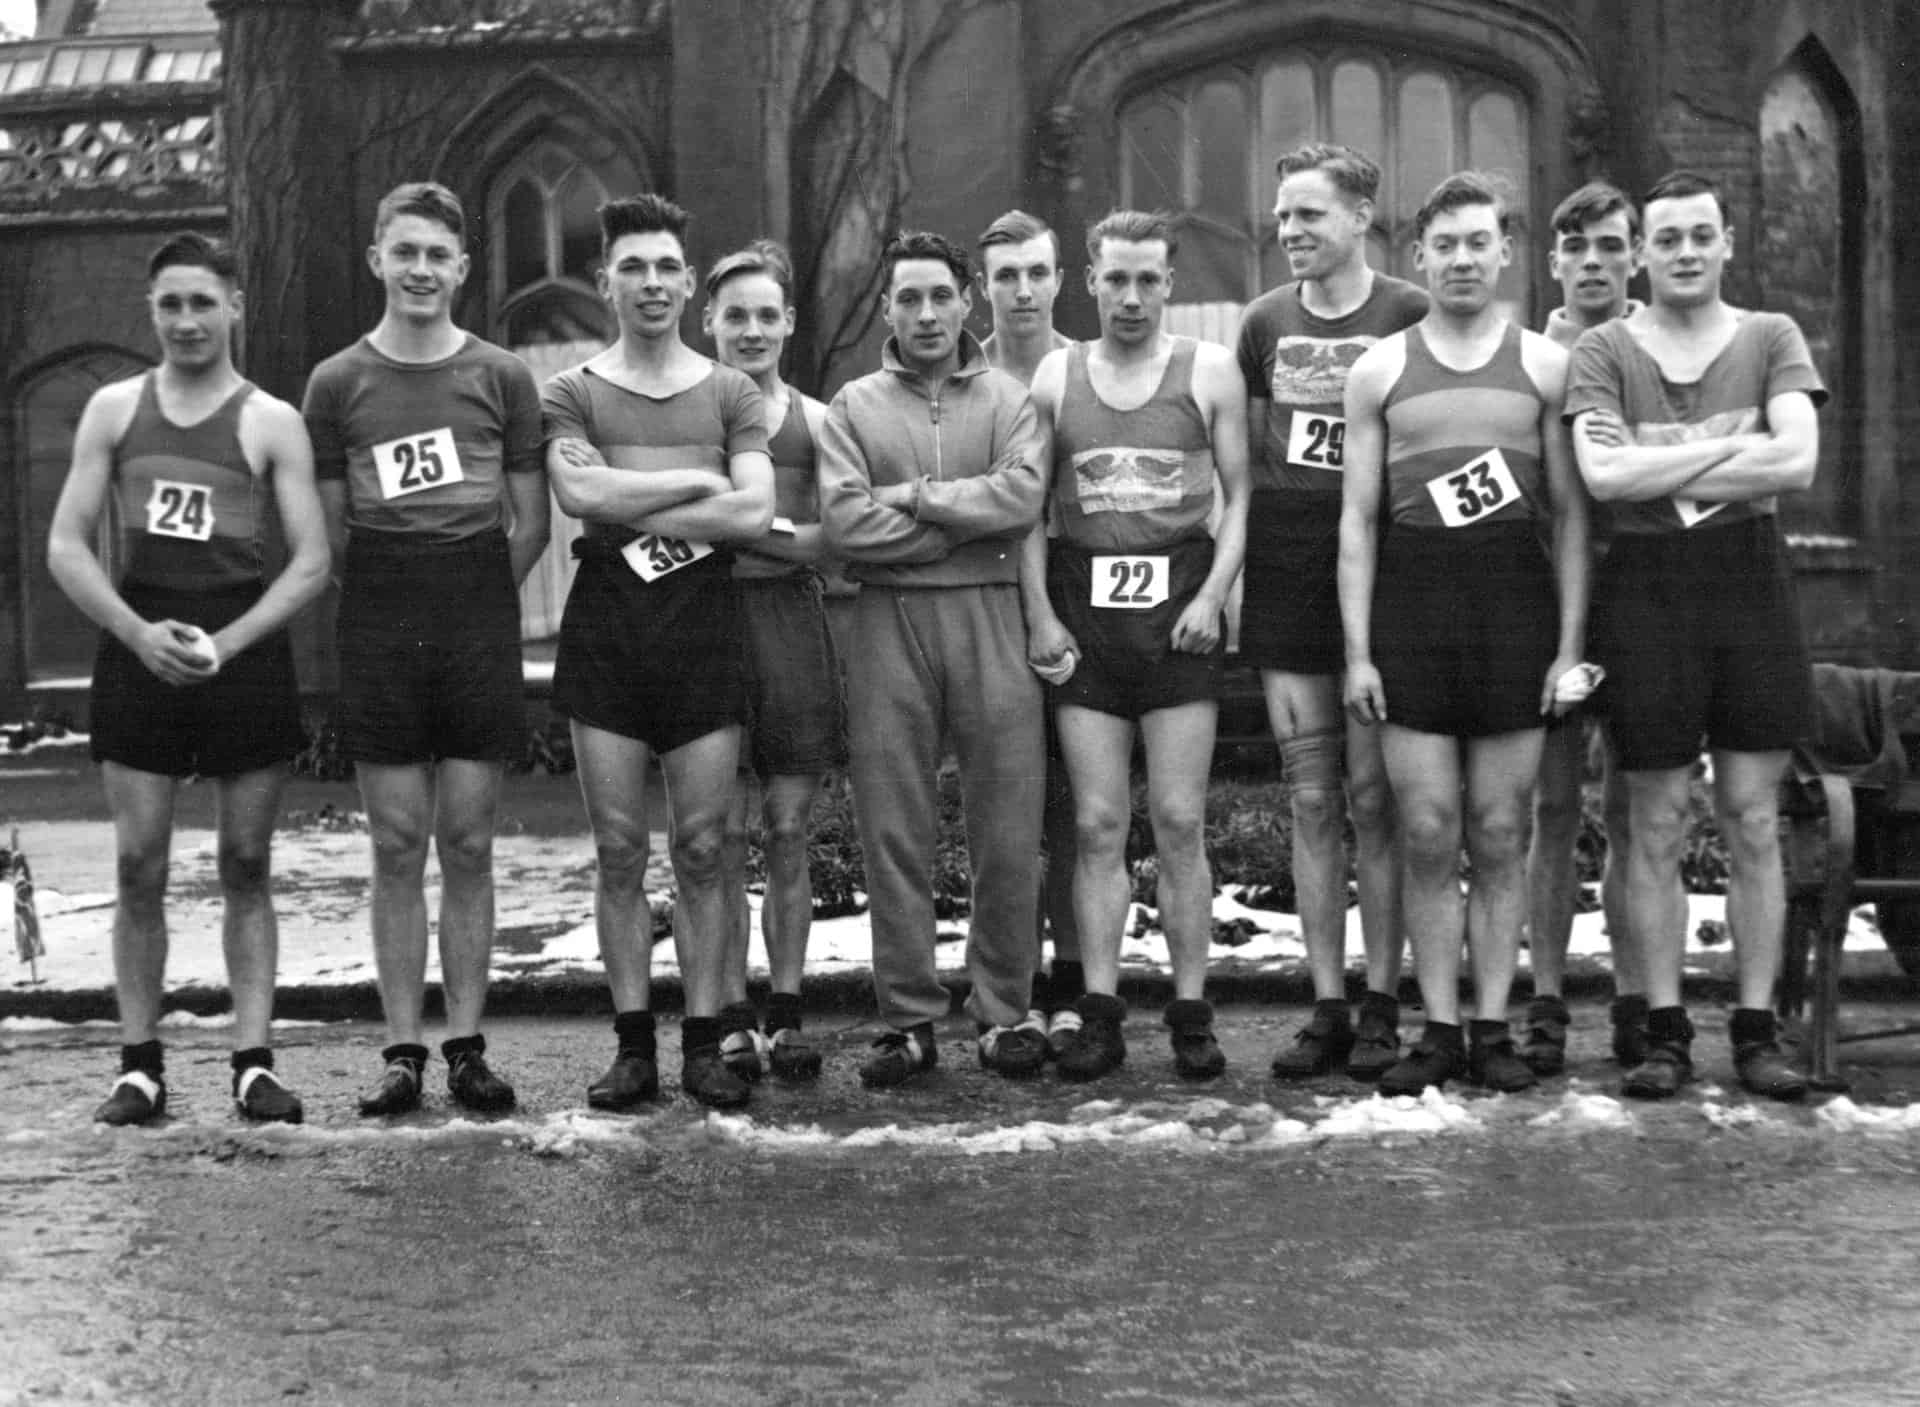 The Smethwick Harriers team, for the Staffordshire County Championship 1939. Shows left to right; W H Perry (24), C Pickering (25), J Oliver, R W G Lowe, J J Bushby, E H Edwards, Frank Cull, (22) Fred Cull, A New, (33) G Ed Photograph used with kind permission from Sandwell Community History and Archive Service